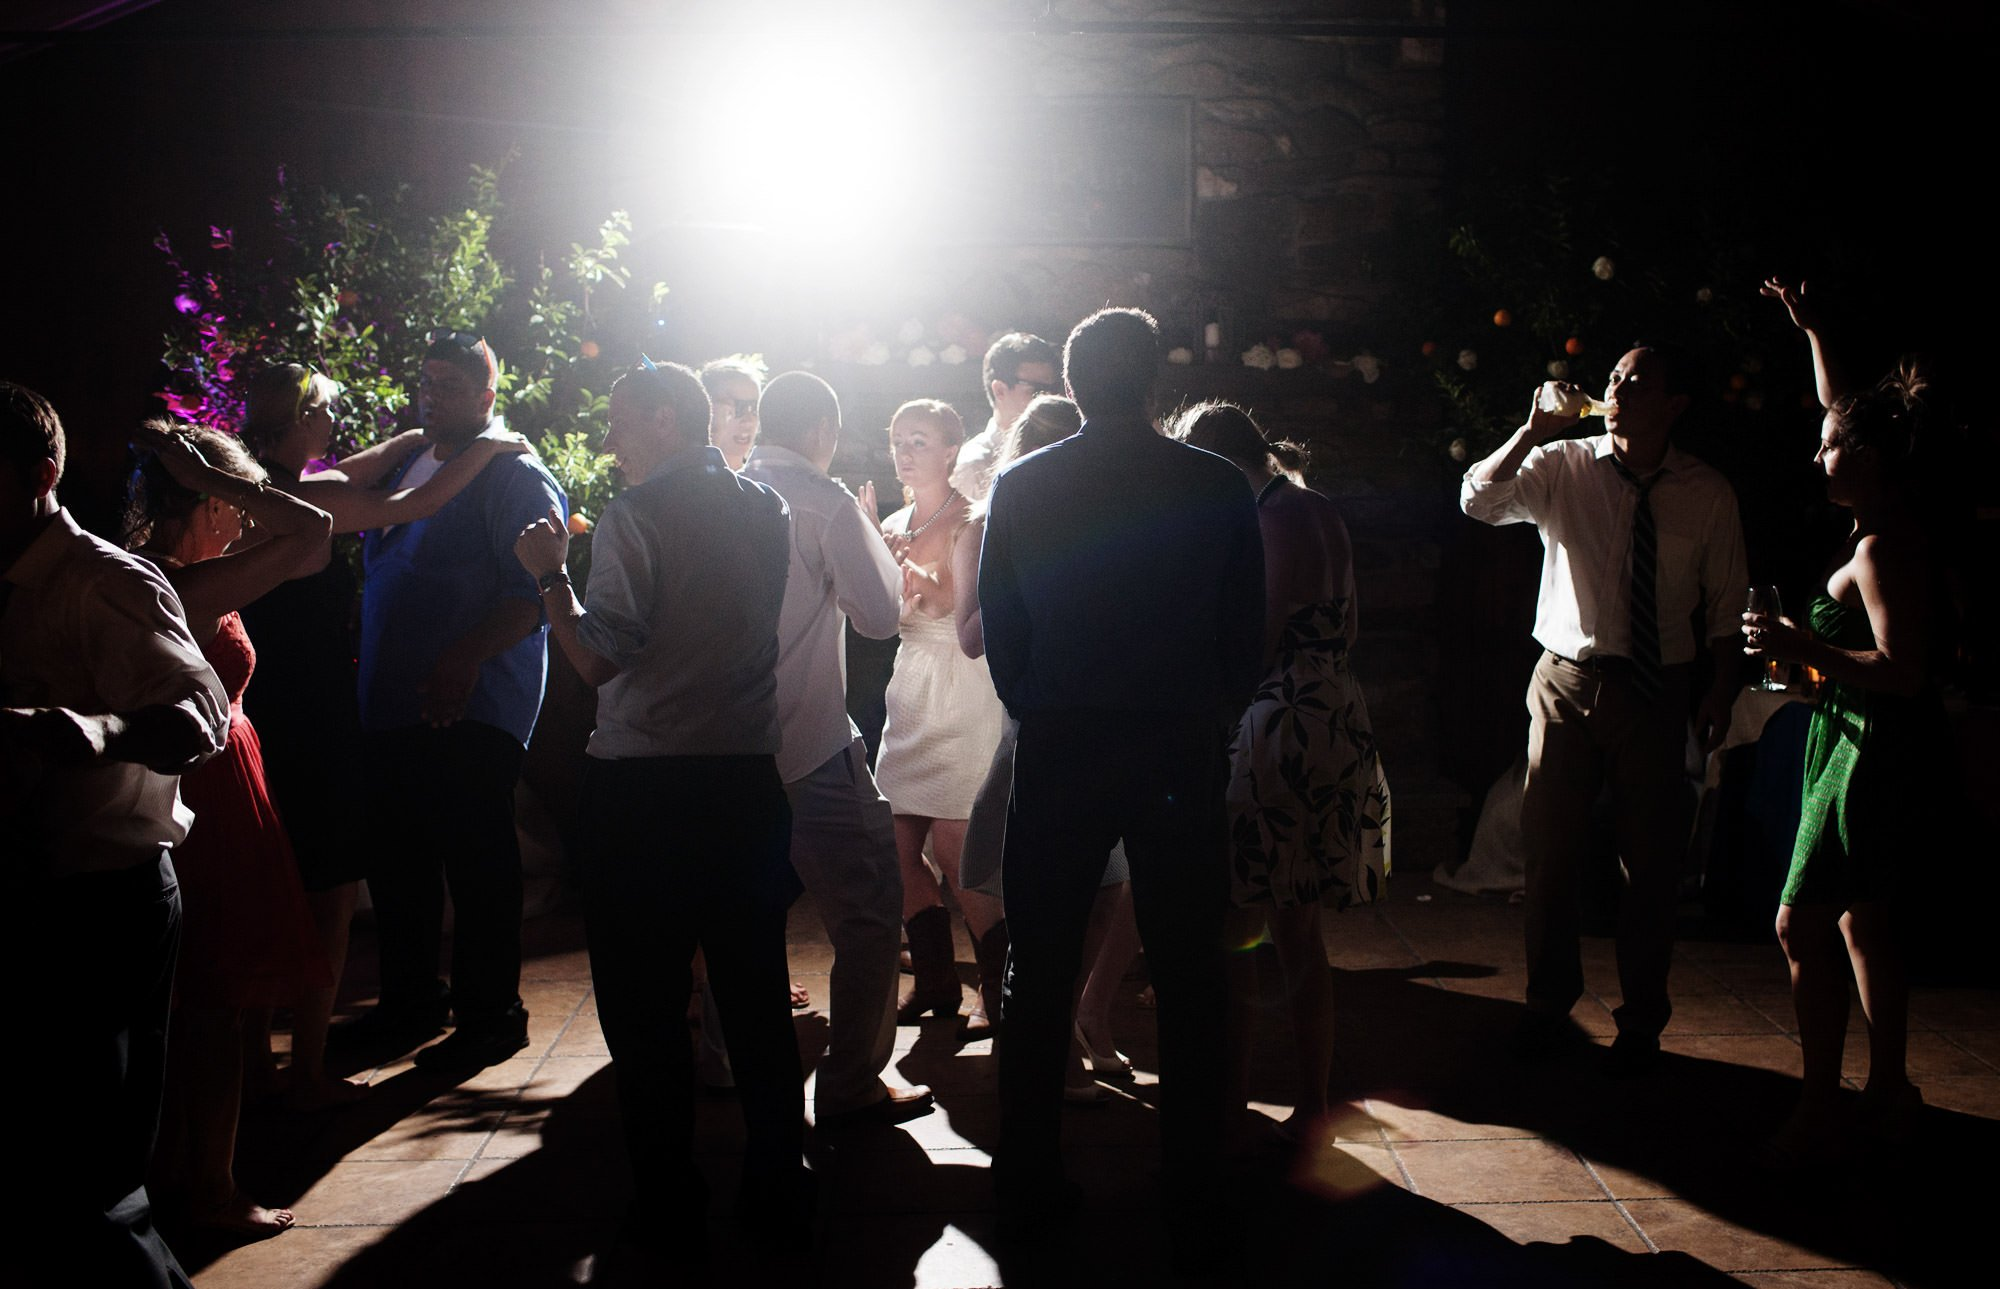 Guests dance during the wedding reception at Marriott Ranch.